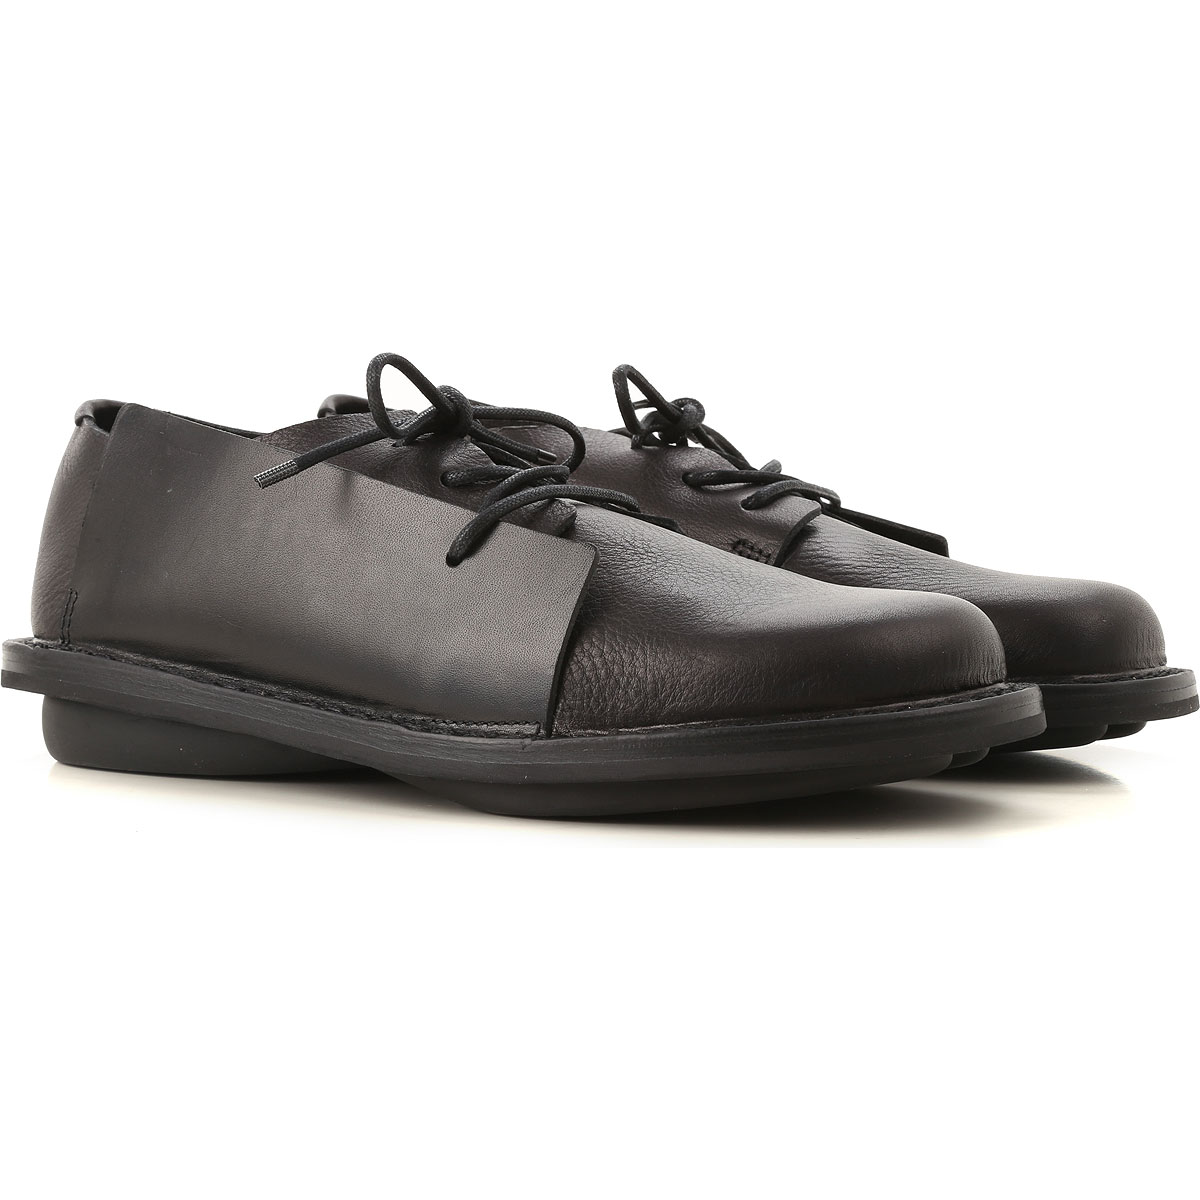 Image of Trippen Lace Up Shoes for Men Oxfords, Derbies and Brogues, Black, Leather, 2017, 10 11 7 8 9